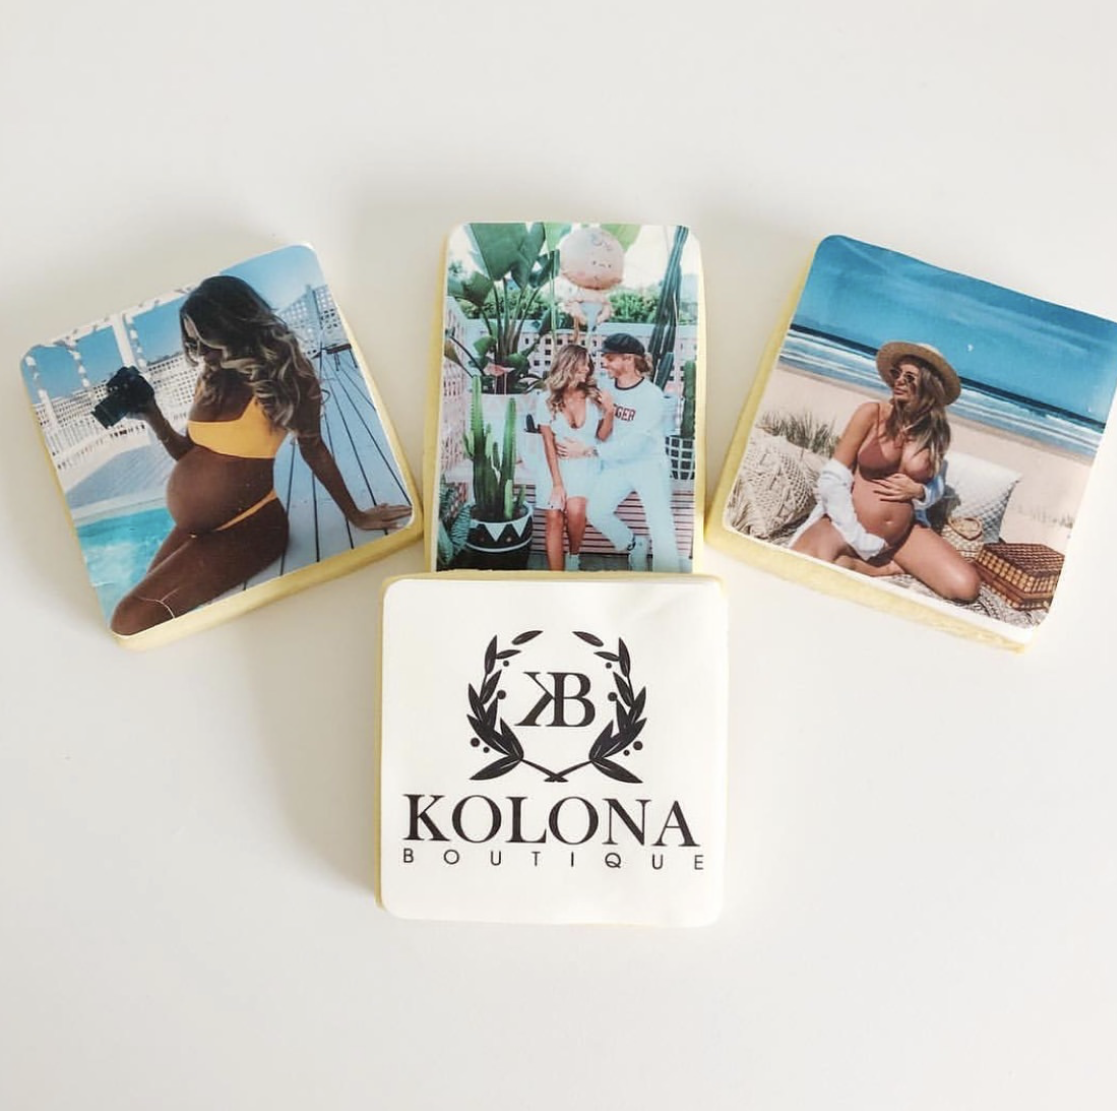 KOLONA BOUTIQUE